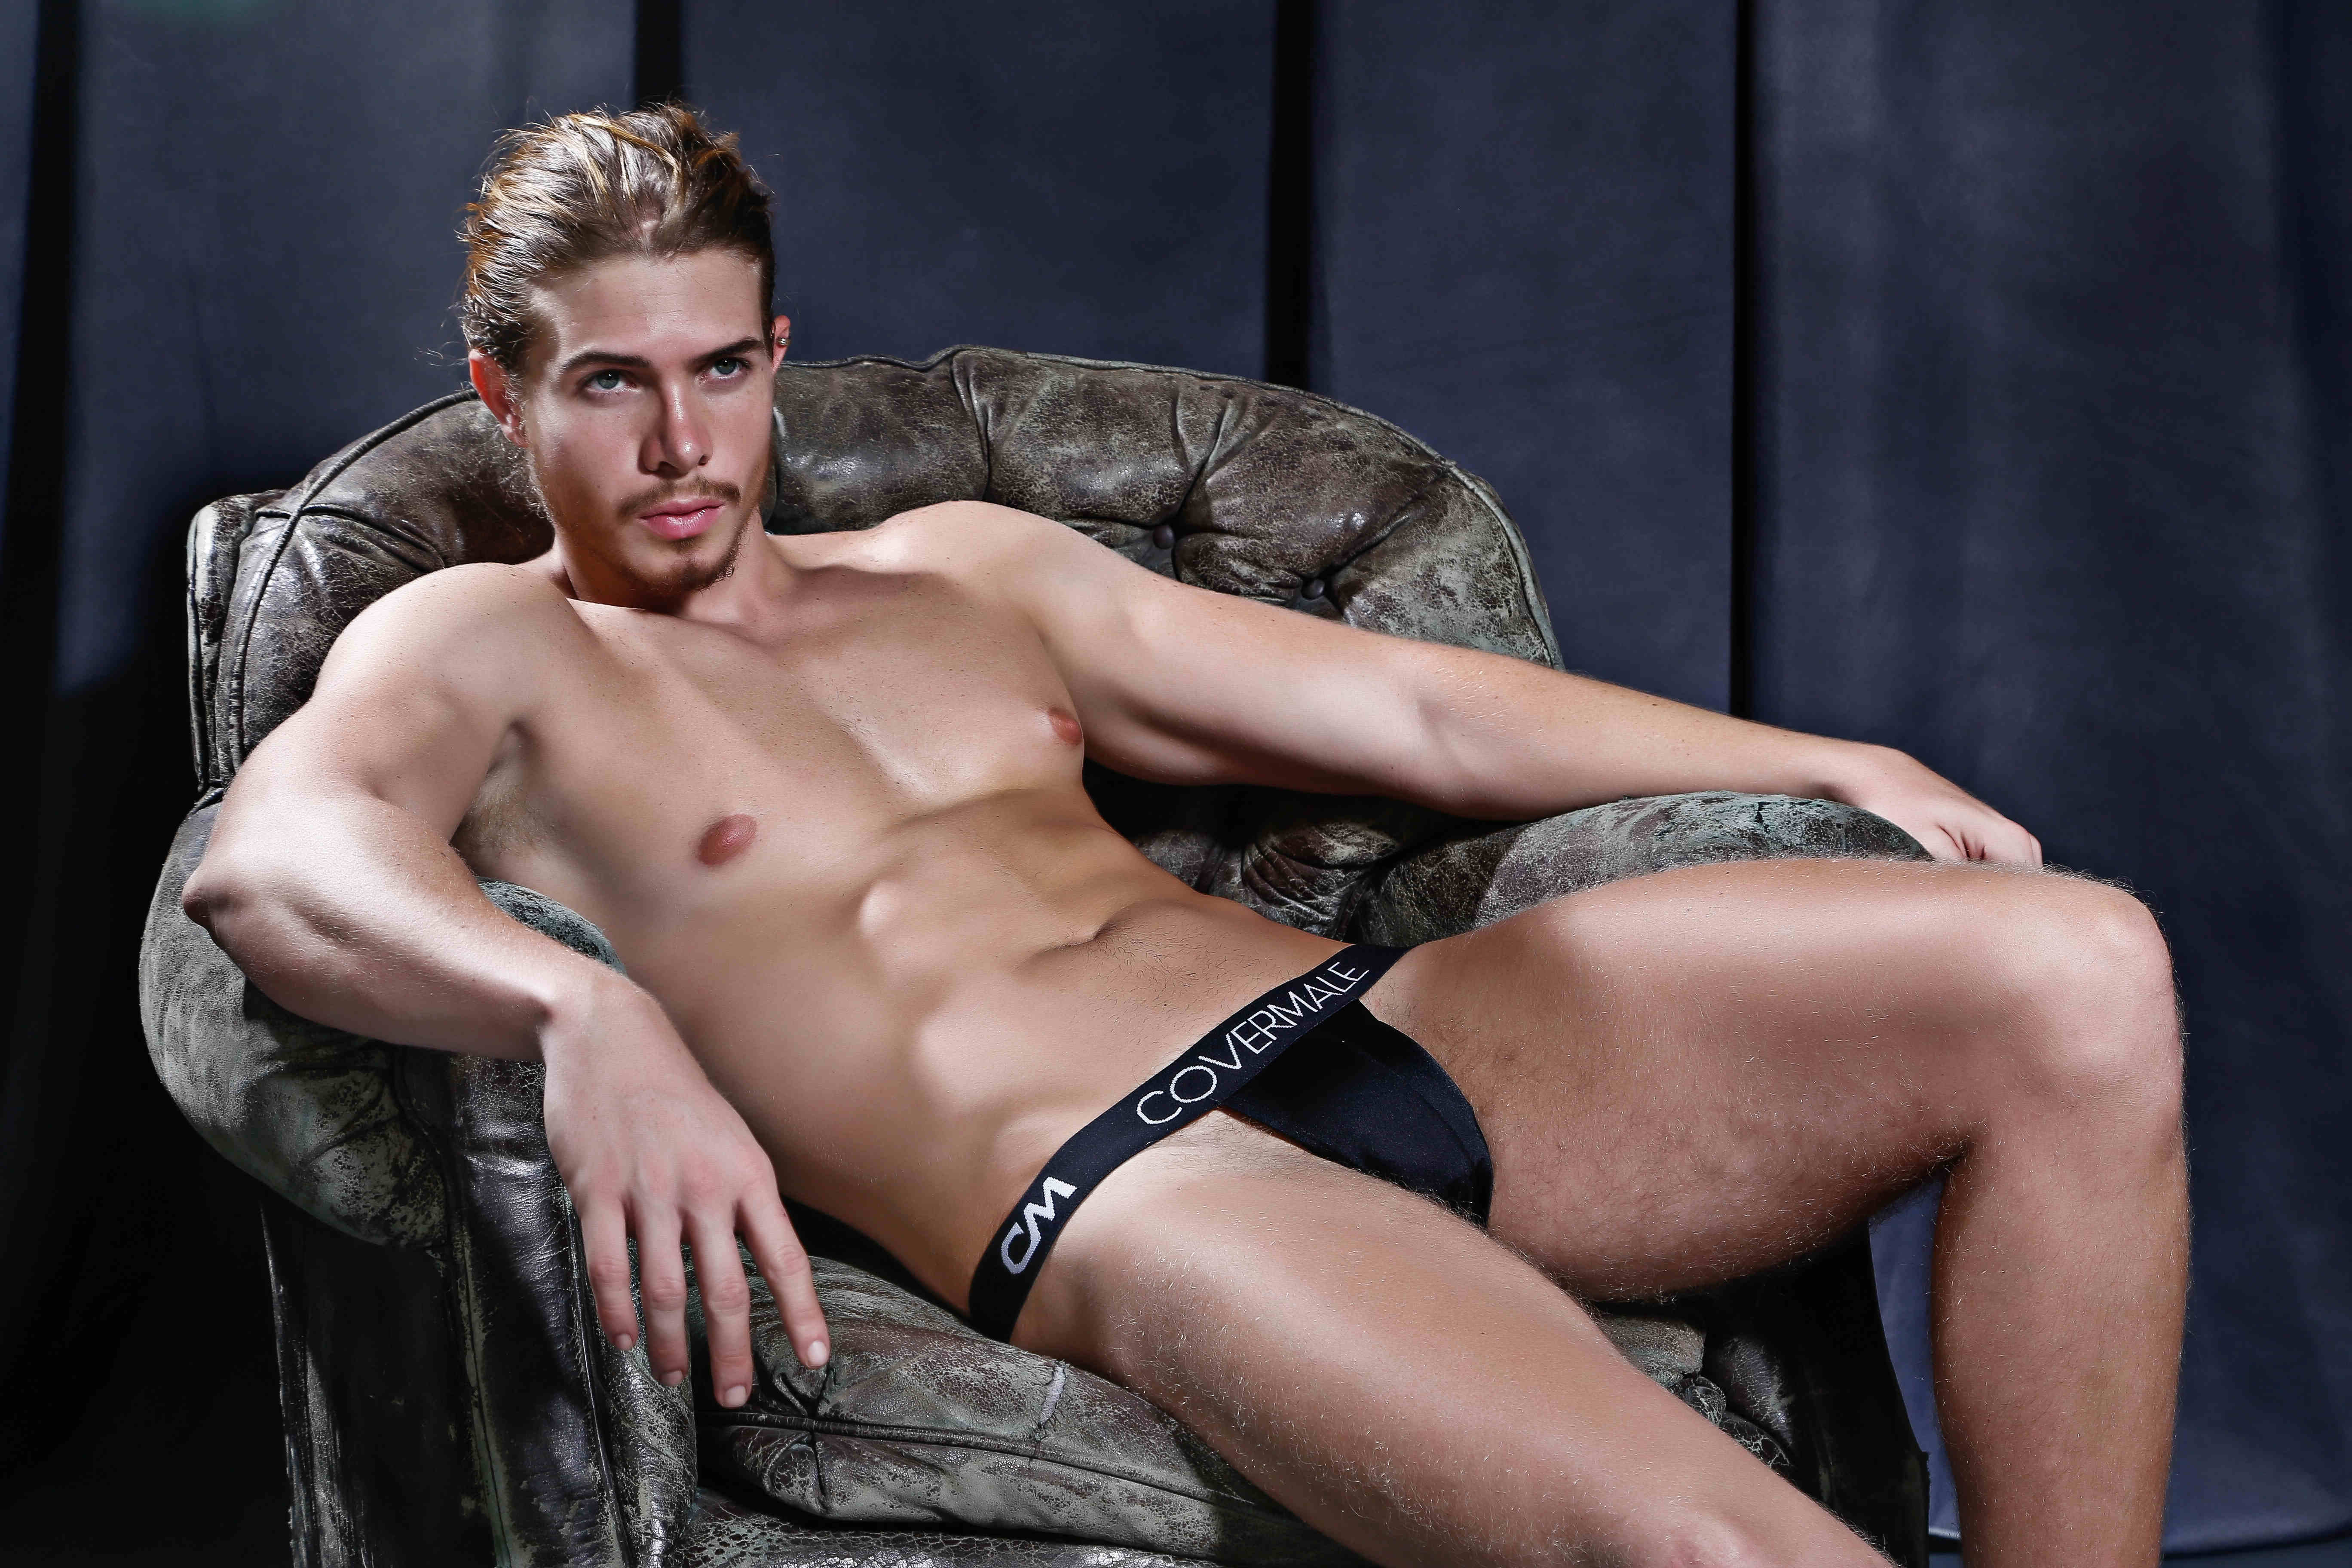 cover-male-releases-curious-slip-thong